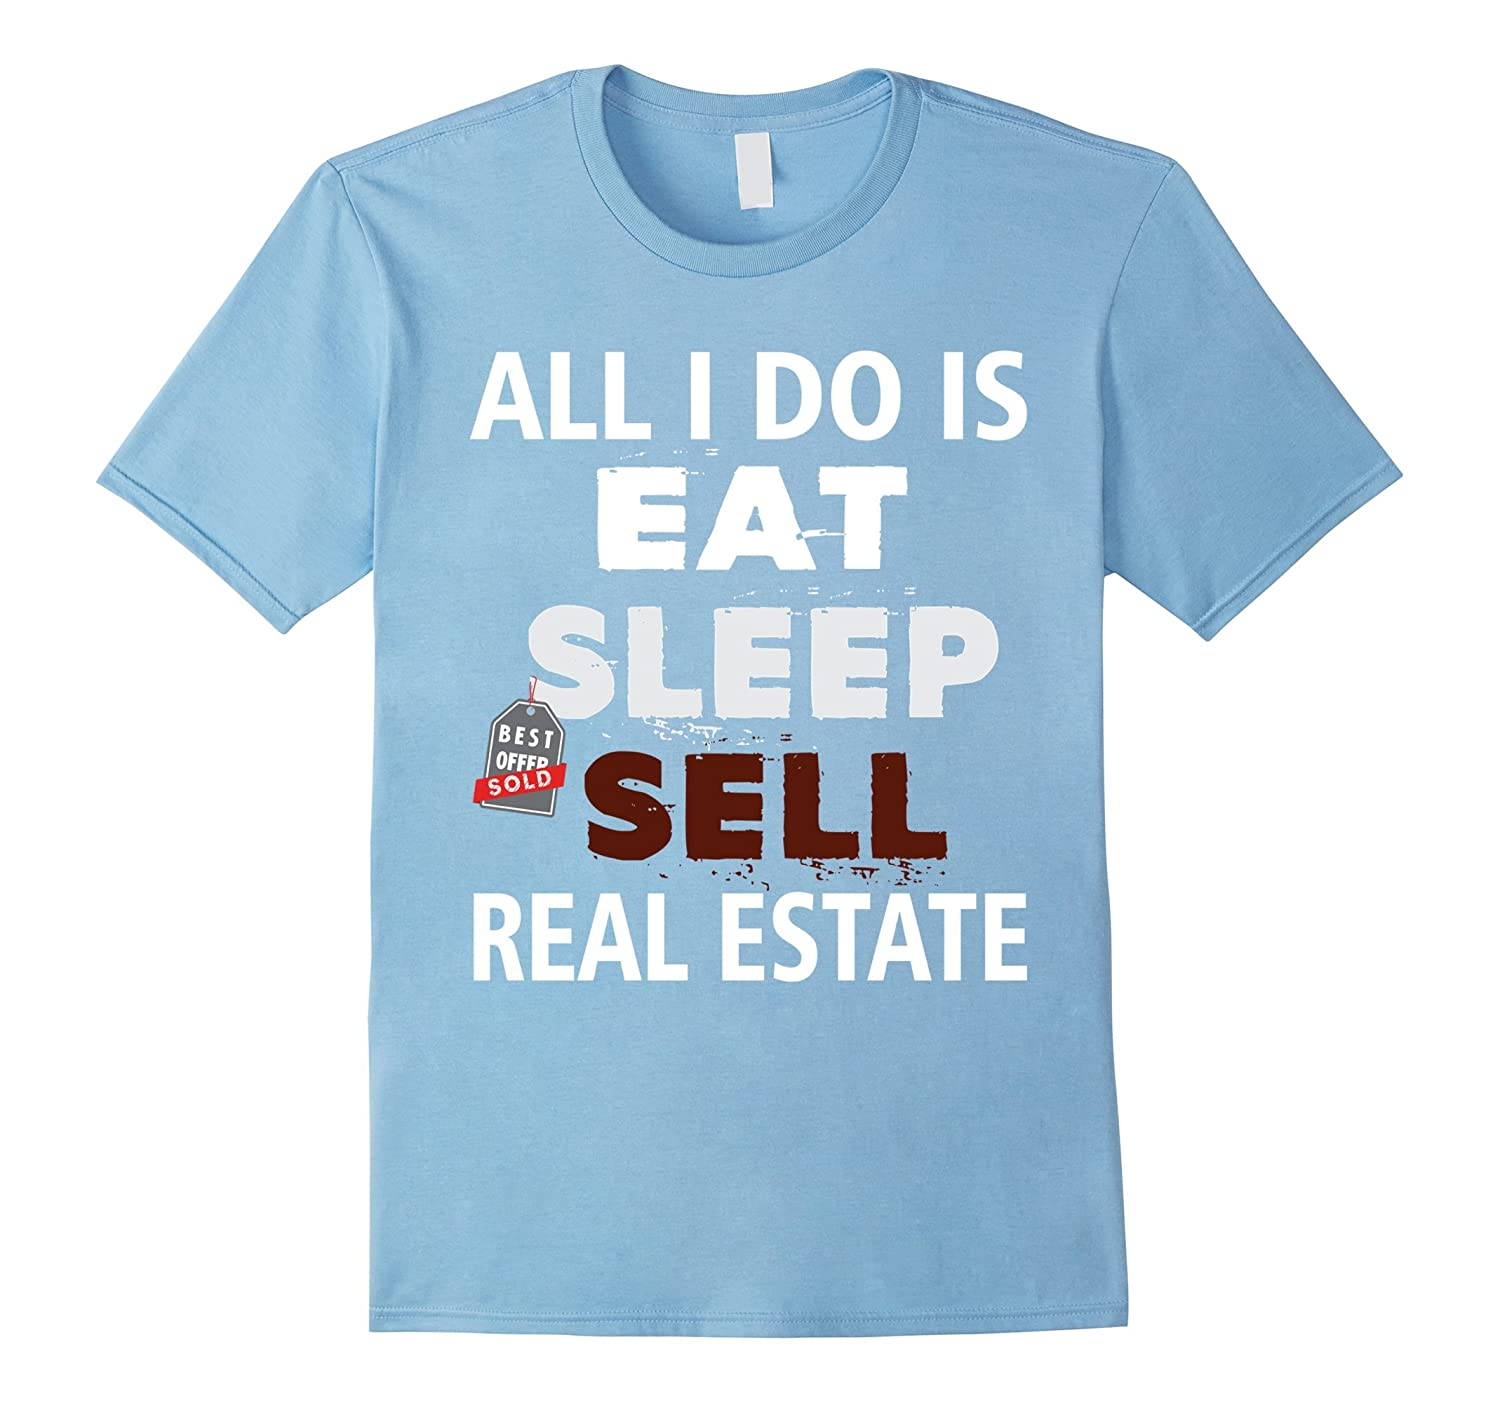 sleeping with real estate agent